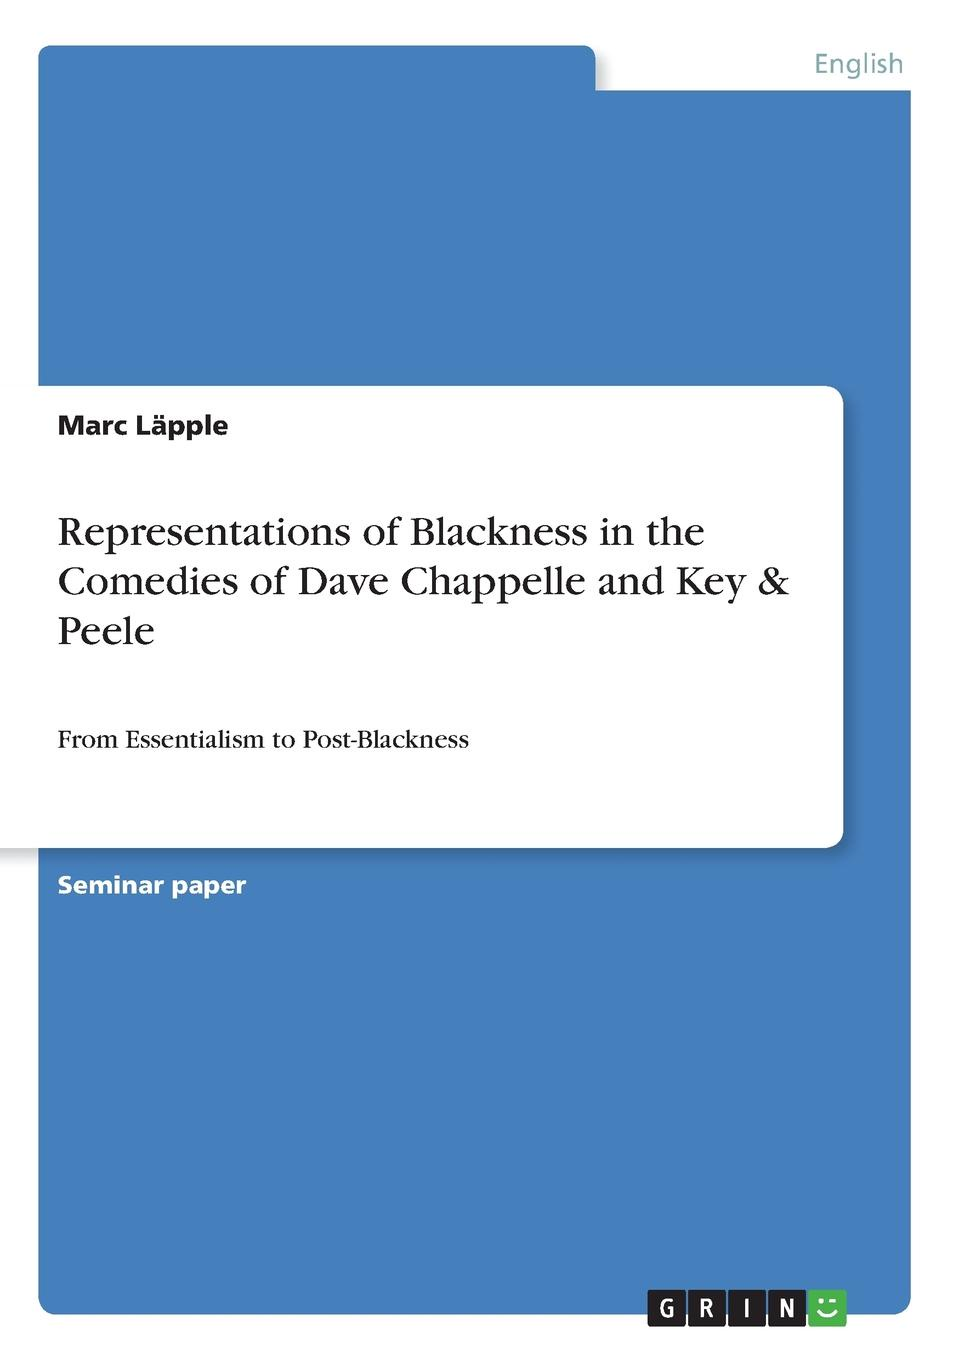 Marc Läpple Representations of Blackness in the Comedies of Dave Chappelle and Key . Peele недорго, оригинальная цена